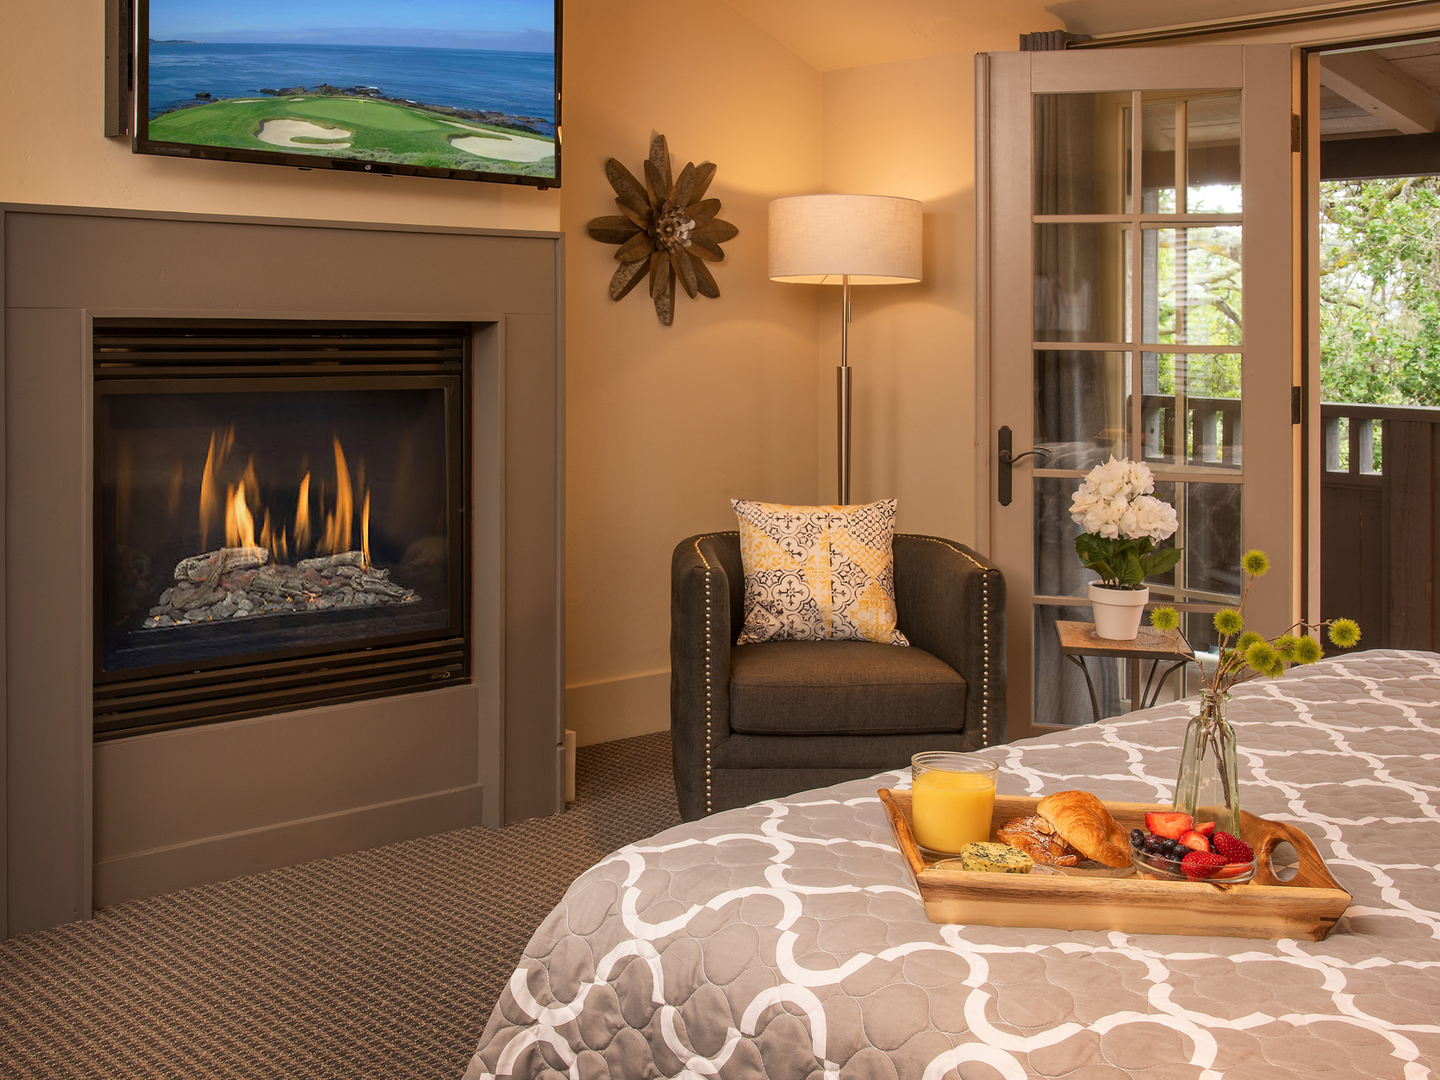 A fire place sitting in a living room at Carmel Country Inn.